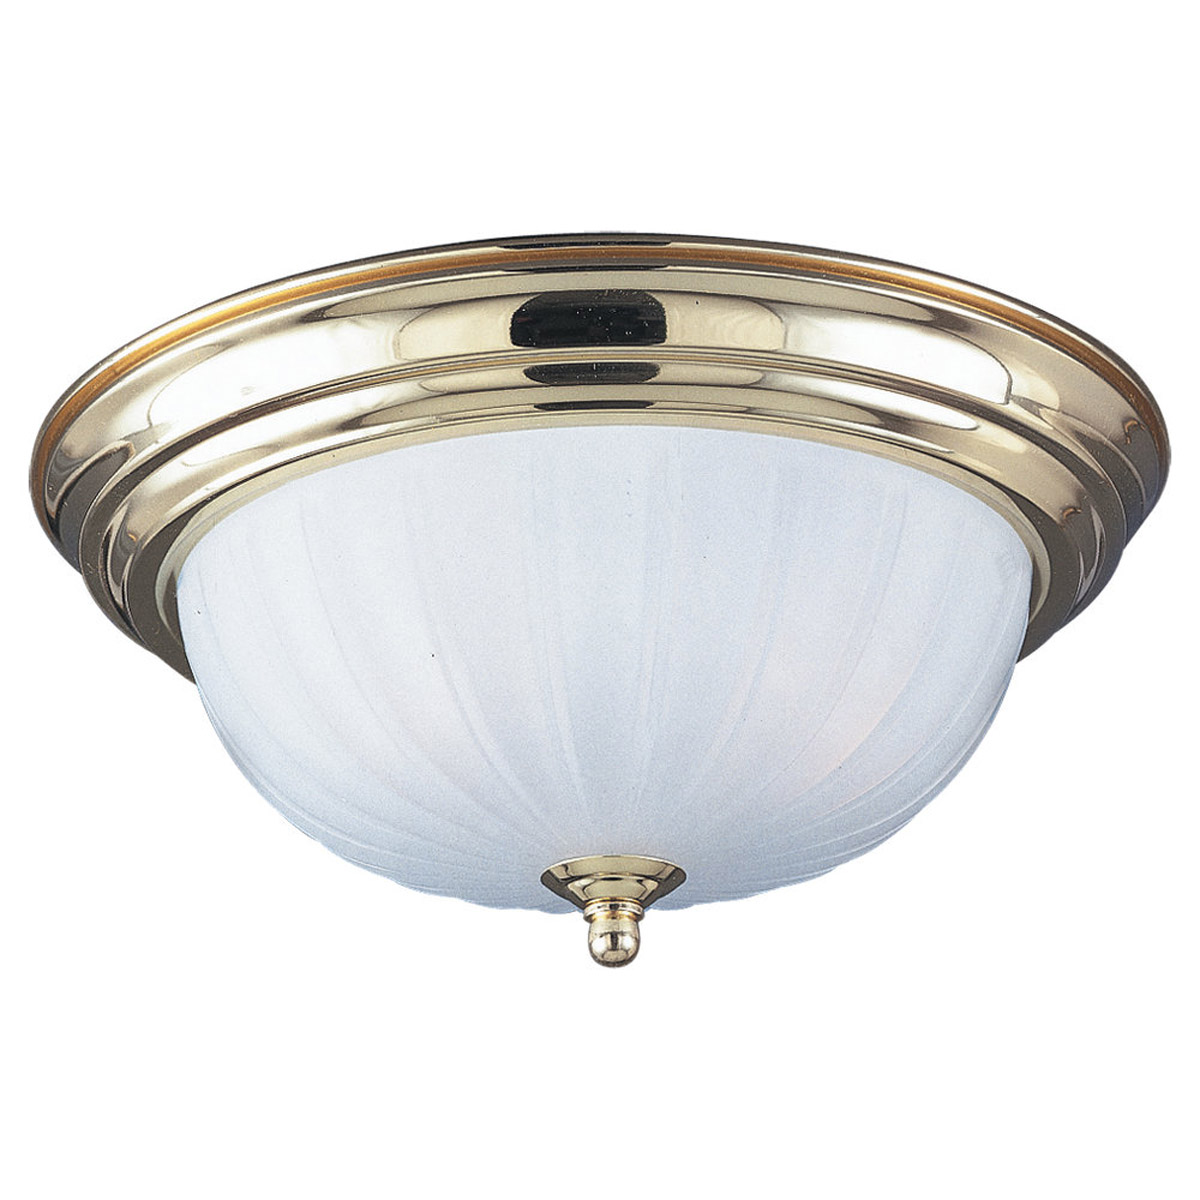 Sea Gull Lighting Linwood 1 Light Flush Mount in Polished Brass 7504-02